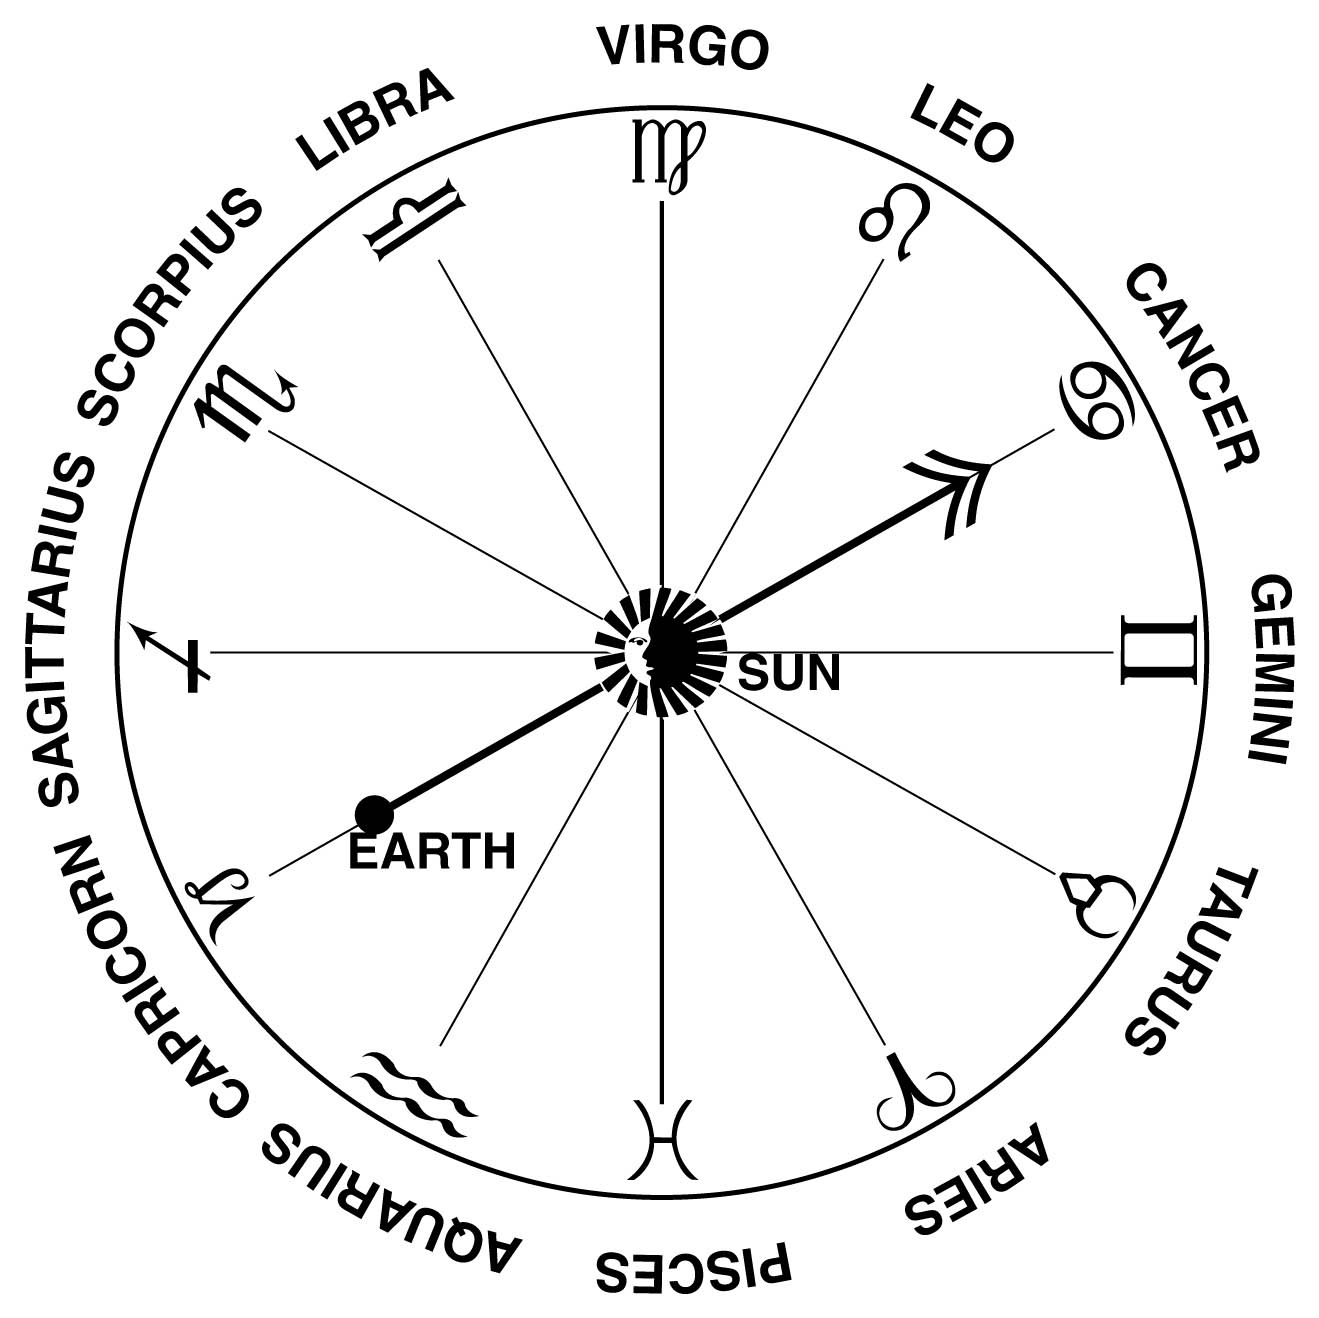 Zodiac Signs And Their Dates - Universe Today Calendar With Zodiac Signs